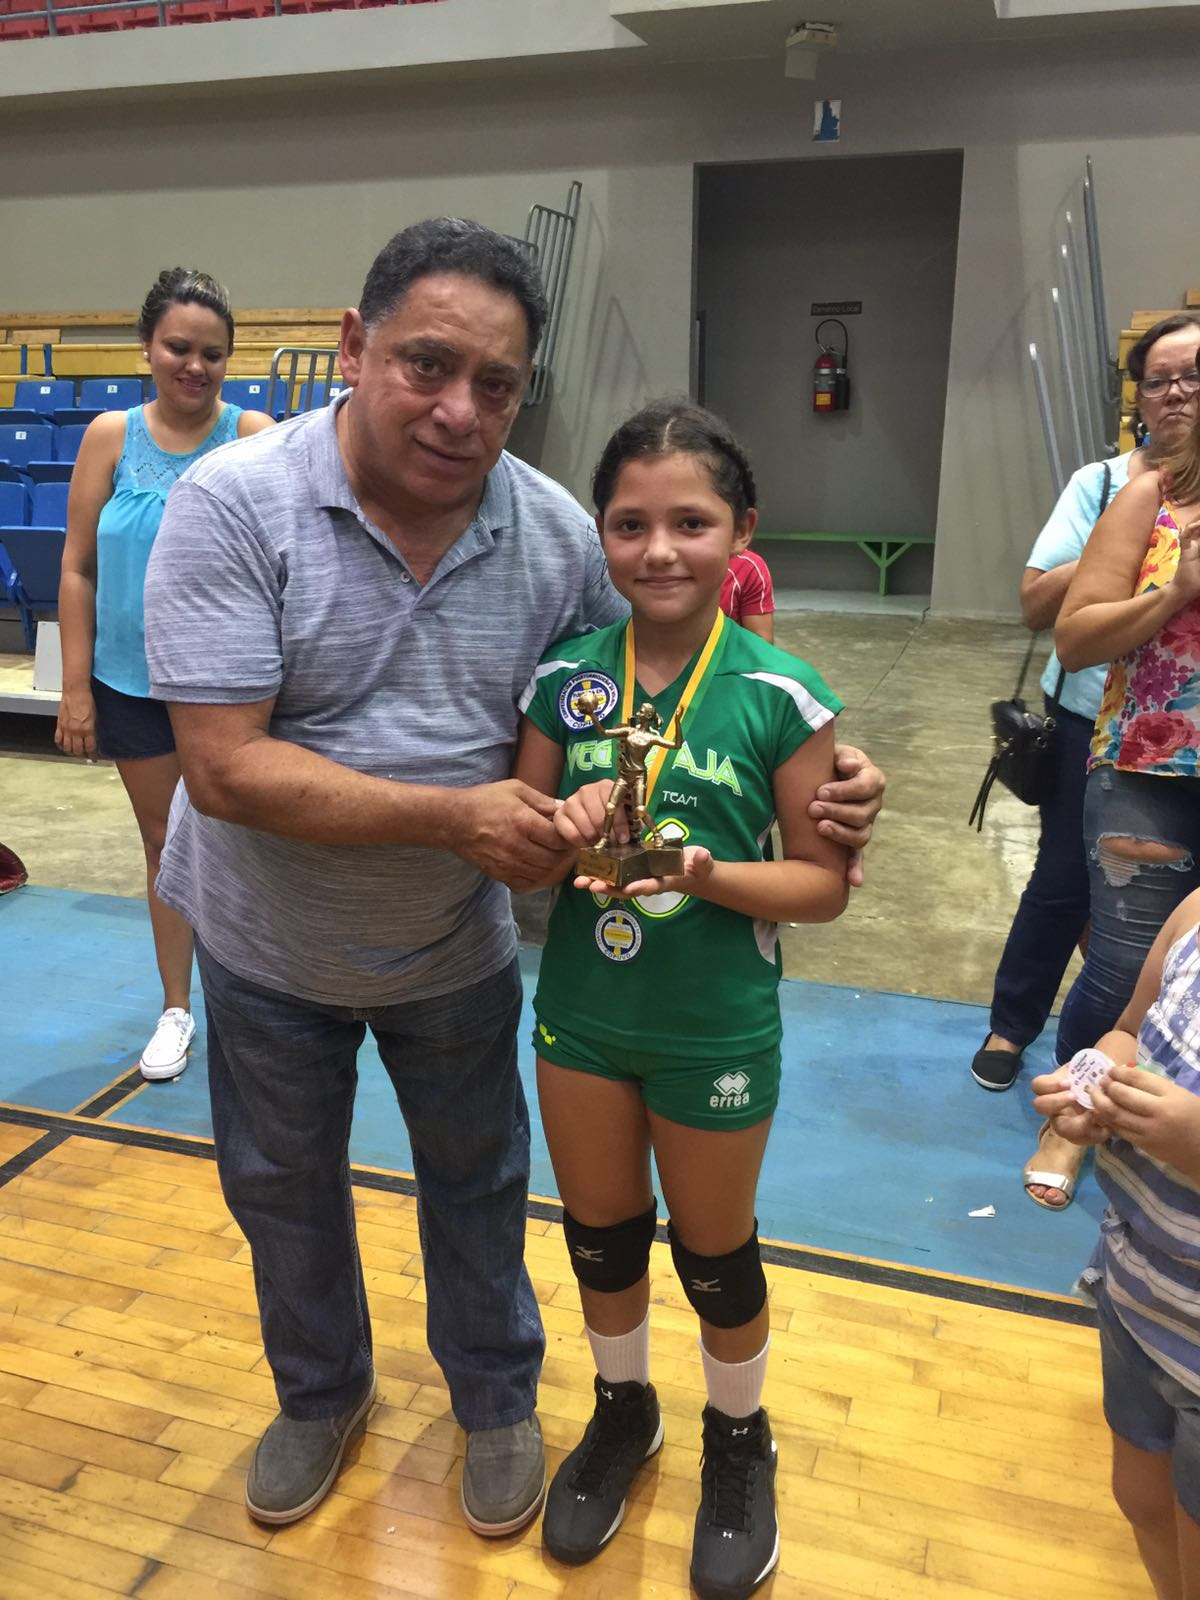 LA NIÑA ANOHA CRUZ DE VEGA BAJA TEAM MVP 2016 EN 10 UNDER